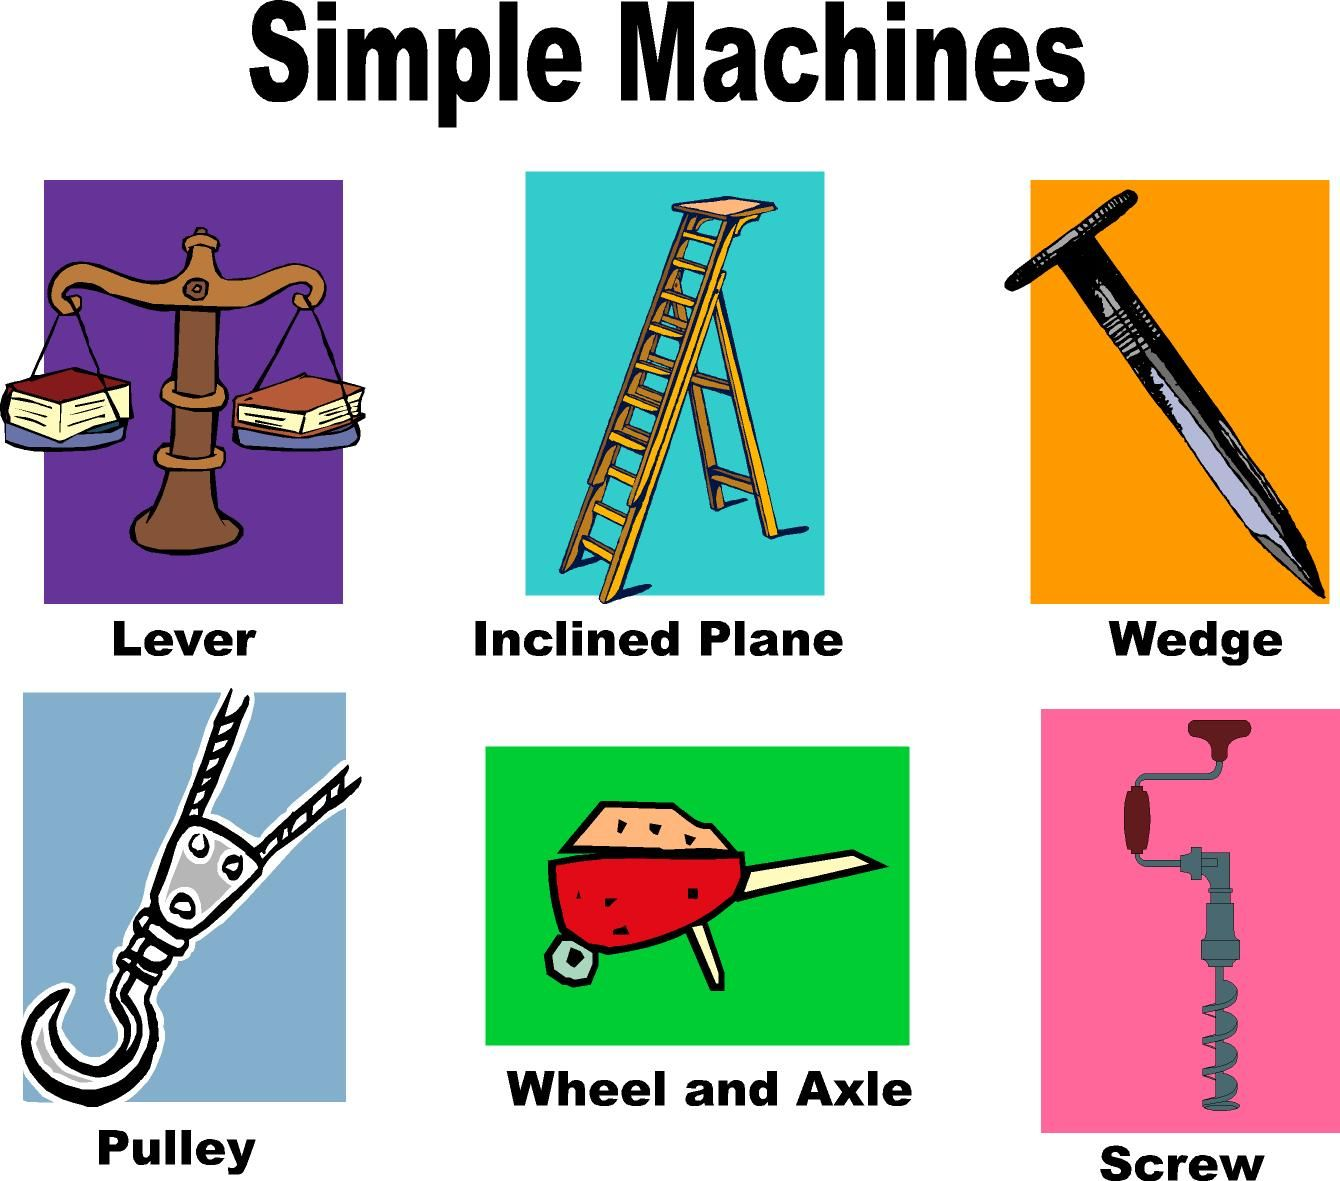 What Are The Six Simple Machines